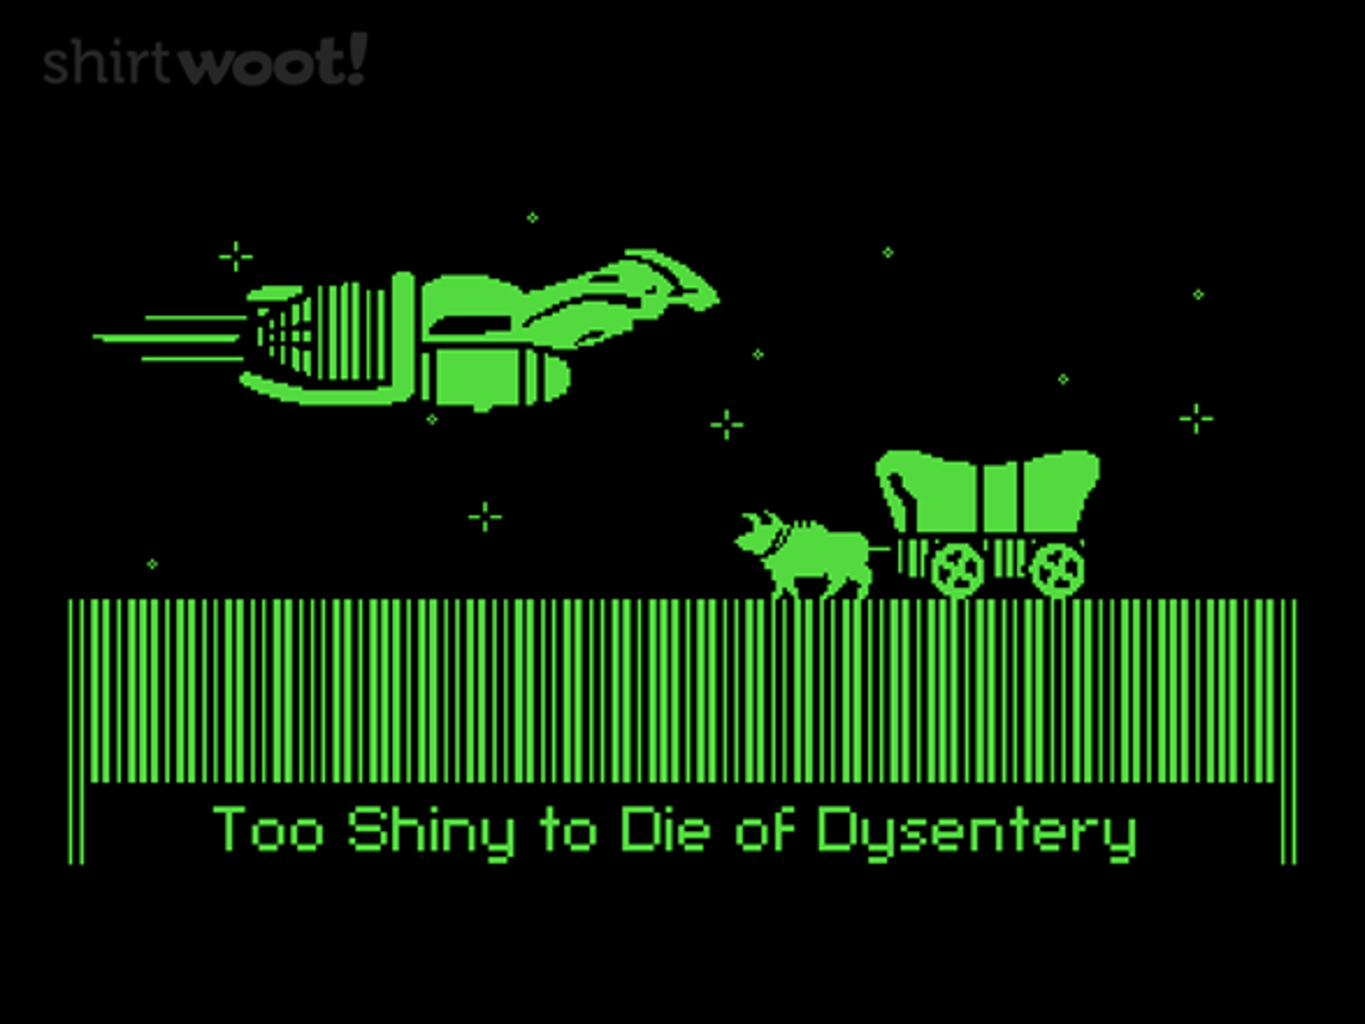 Woot!: Too Shiny to Die